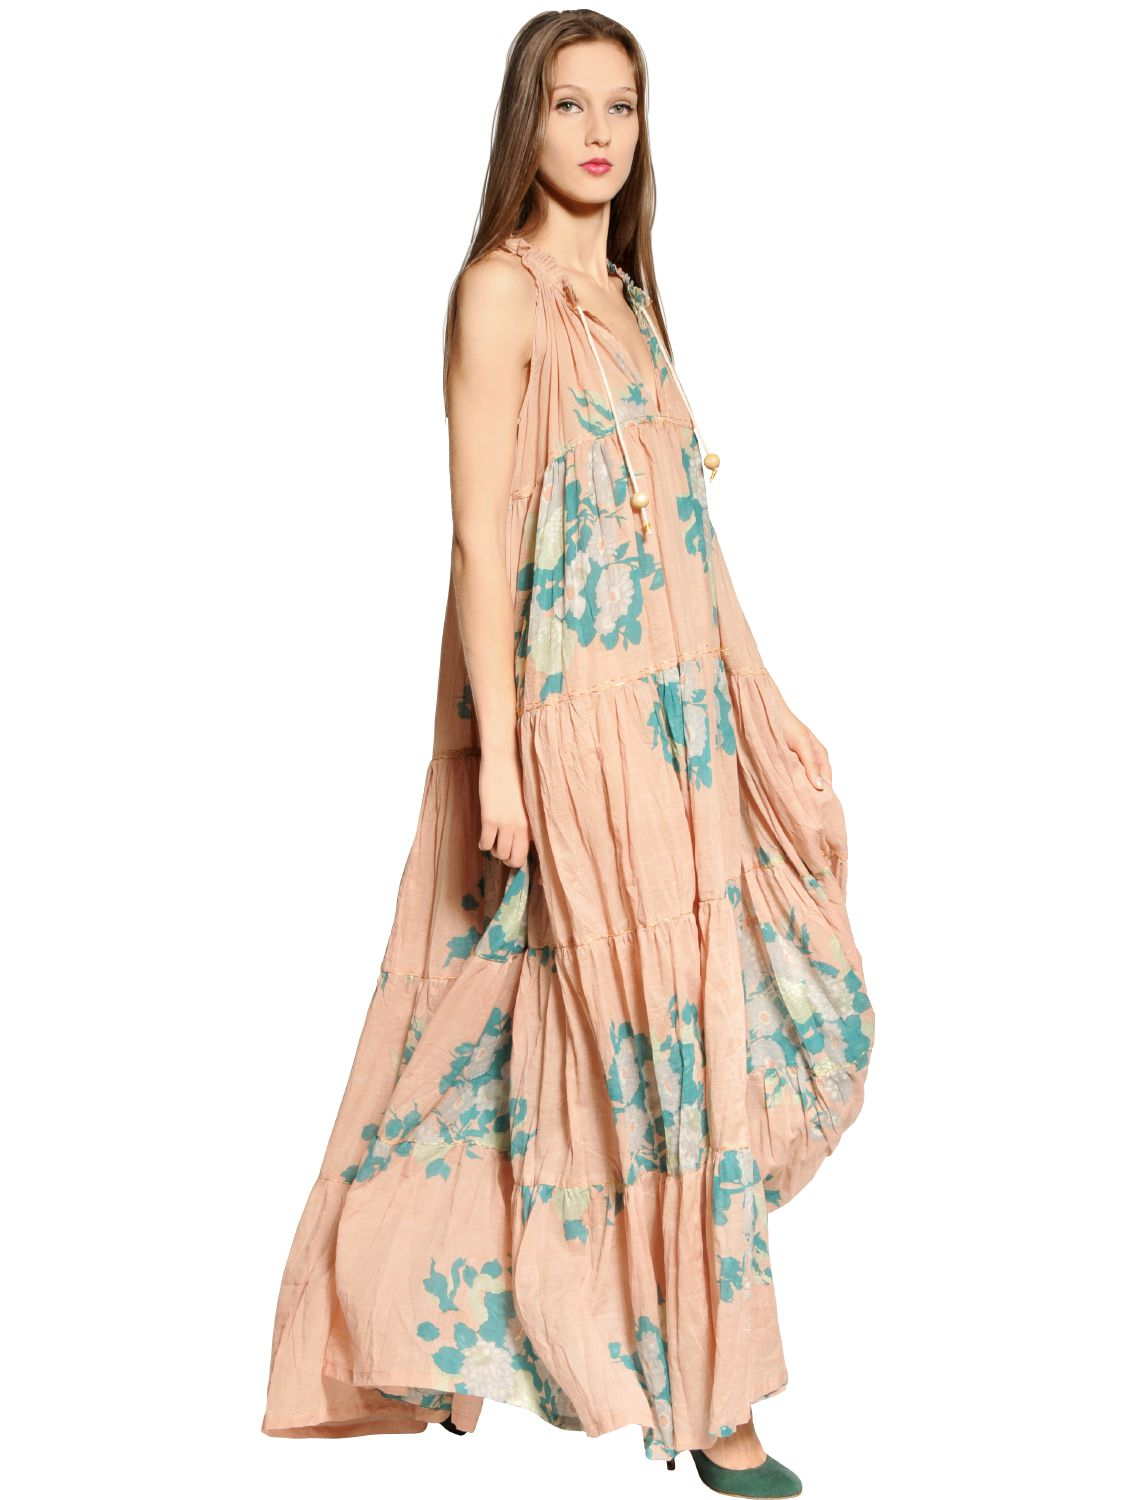 Find great deals on eBay for cotton floral dresses. Shop with confidence.